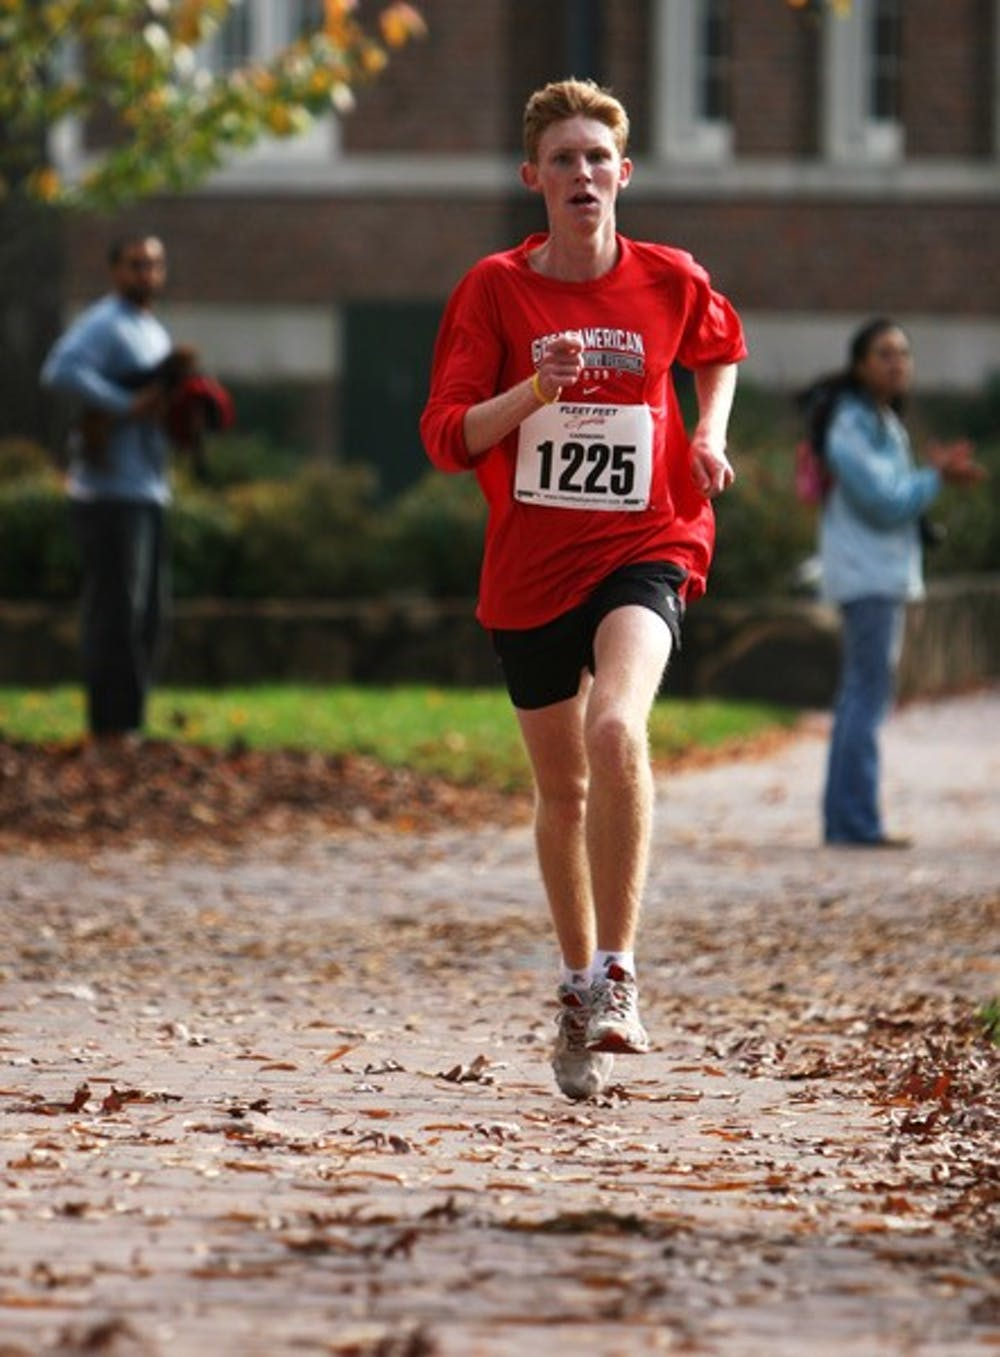 Greg Barnes, the first-place finisher, comes around the bend in one of the largest road races ever run on campus. DTH/Tyler Bent